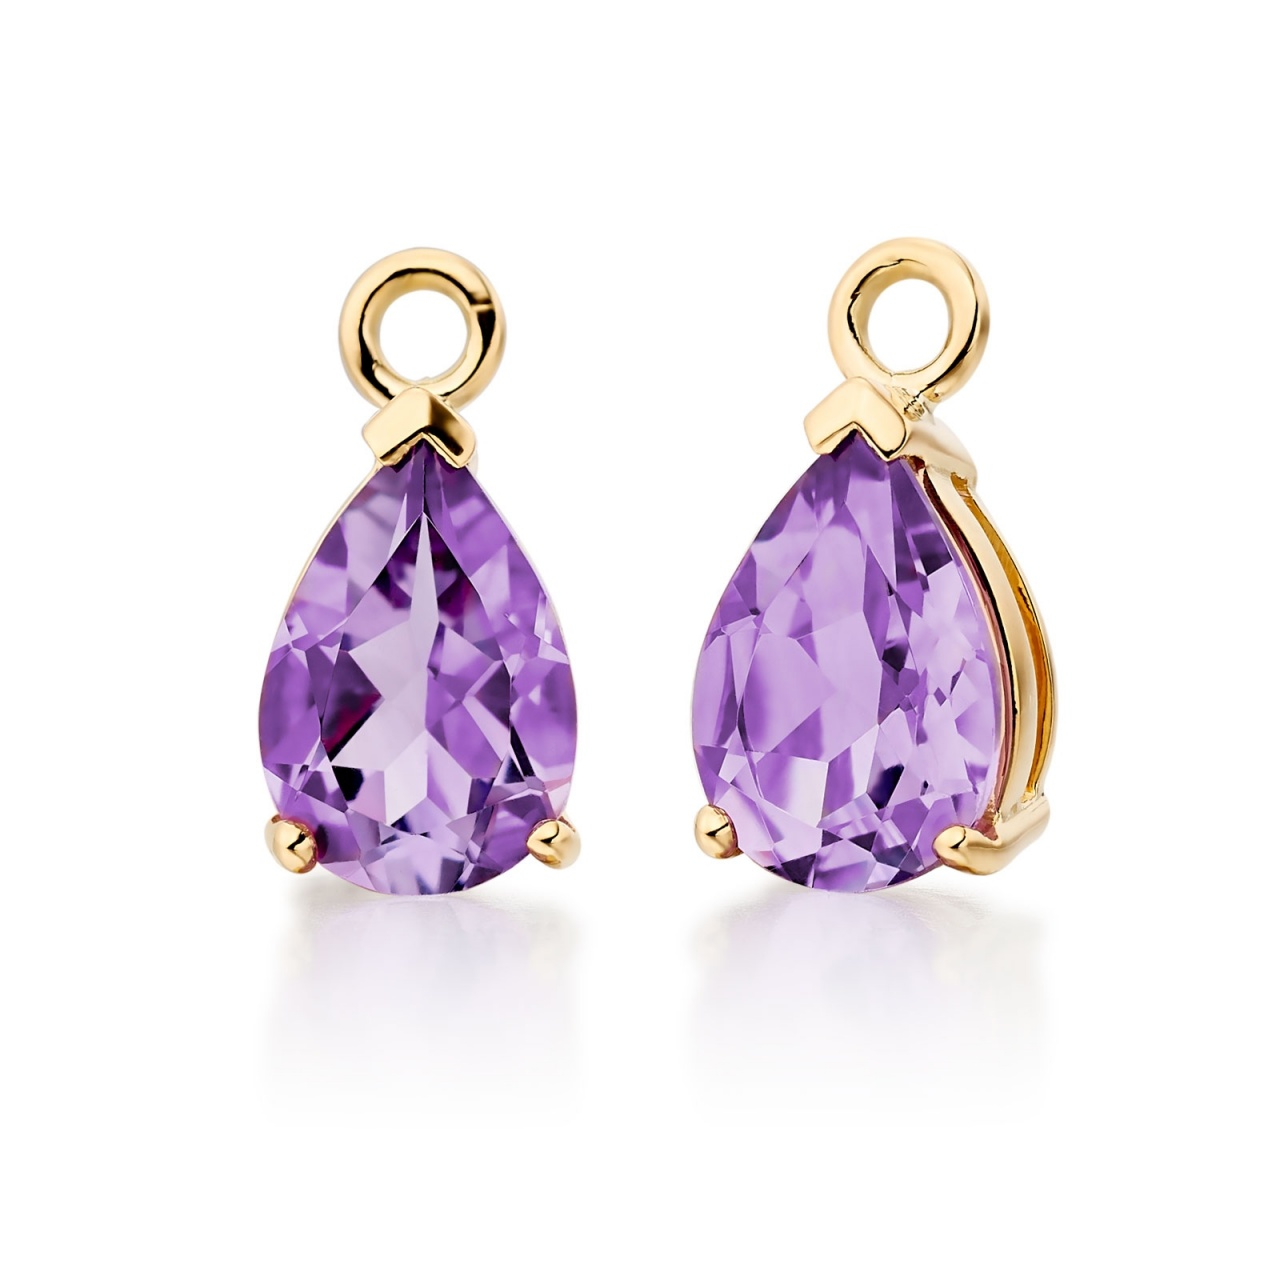 Mythologie Amethyst Leverback Drops in Yellow Gold -GELPYG1038-1